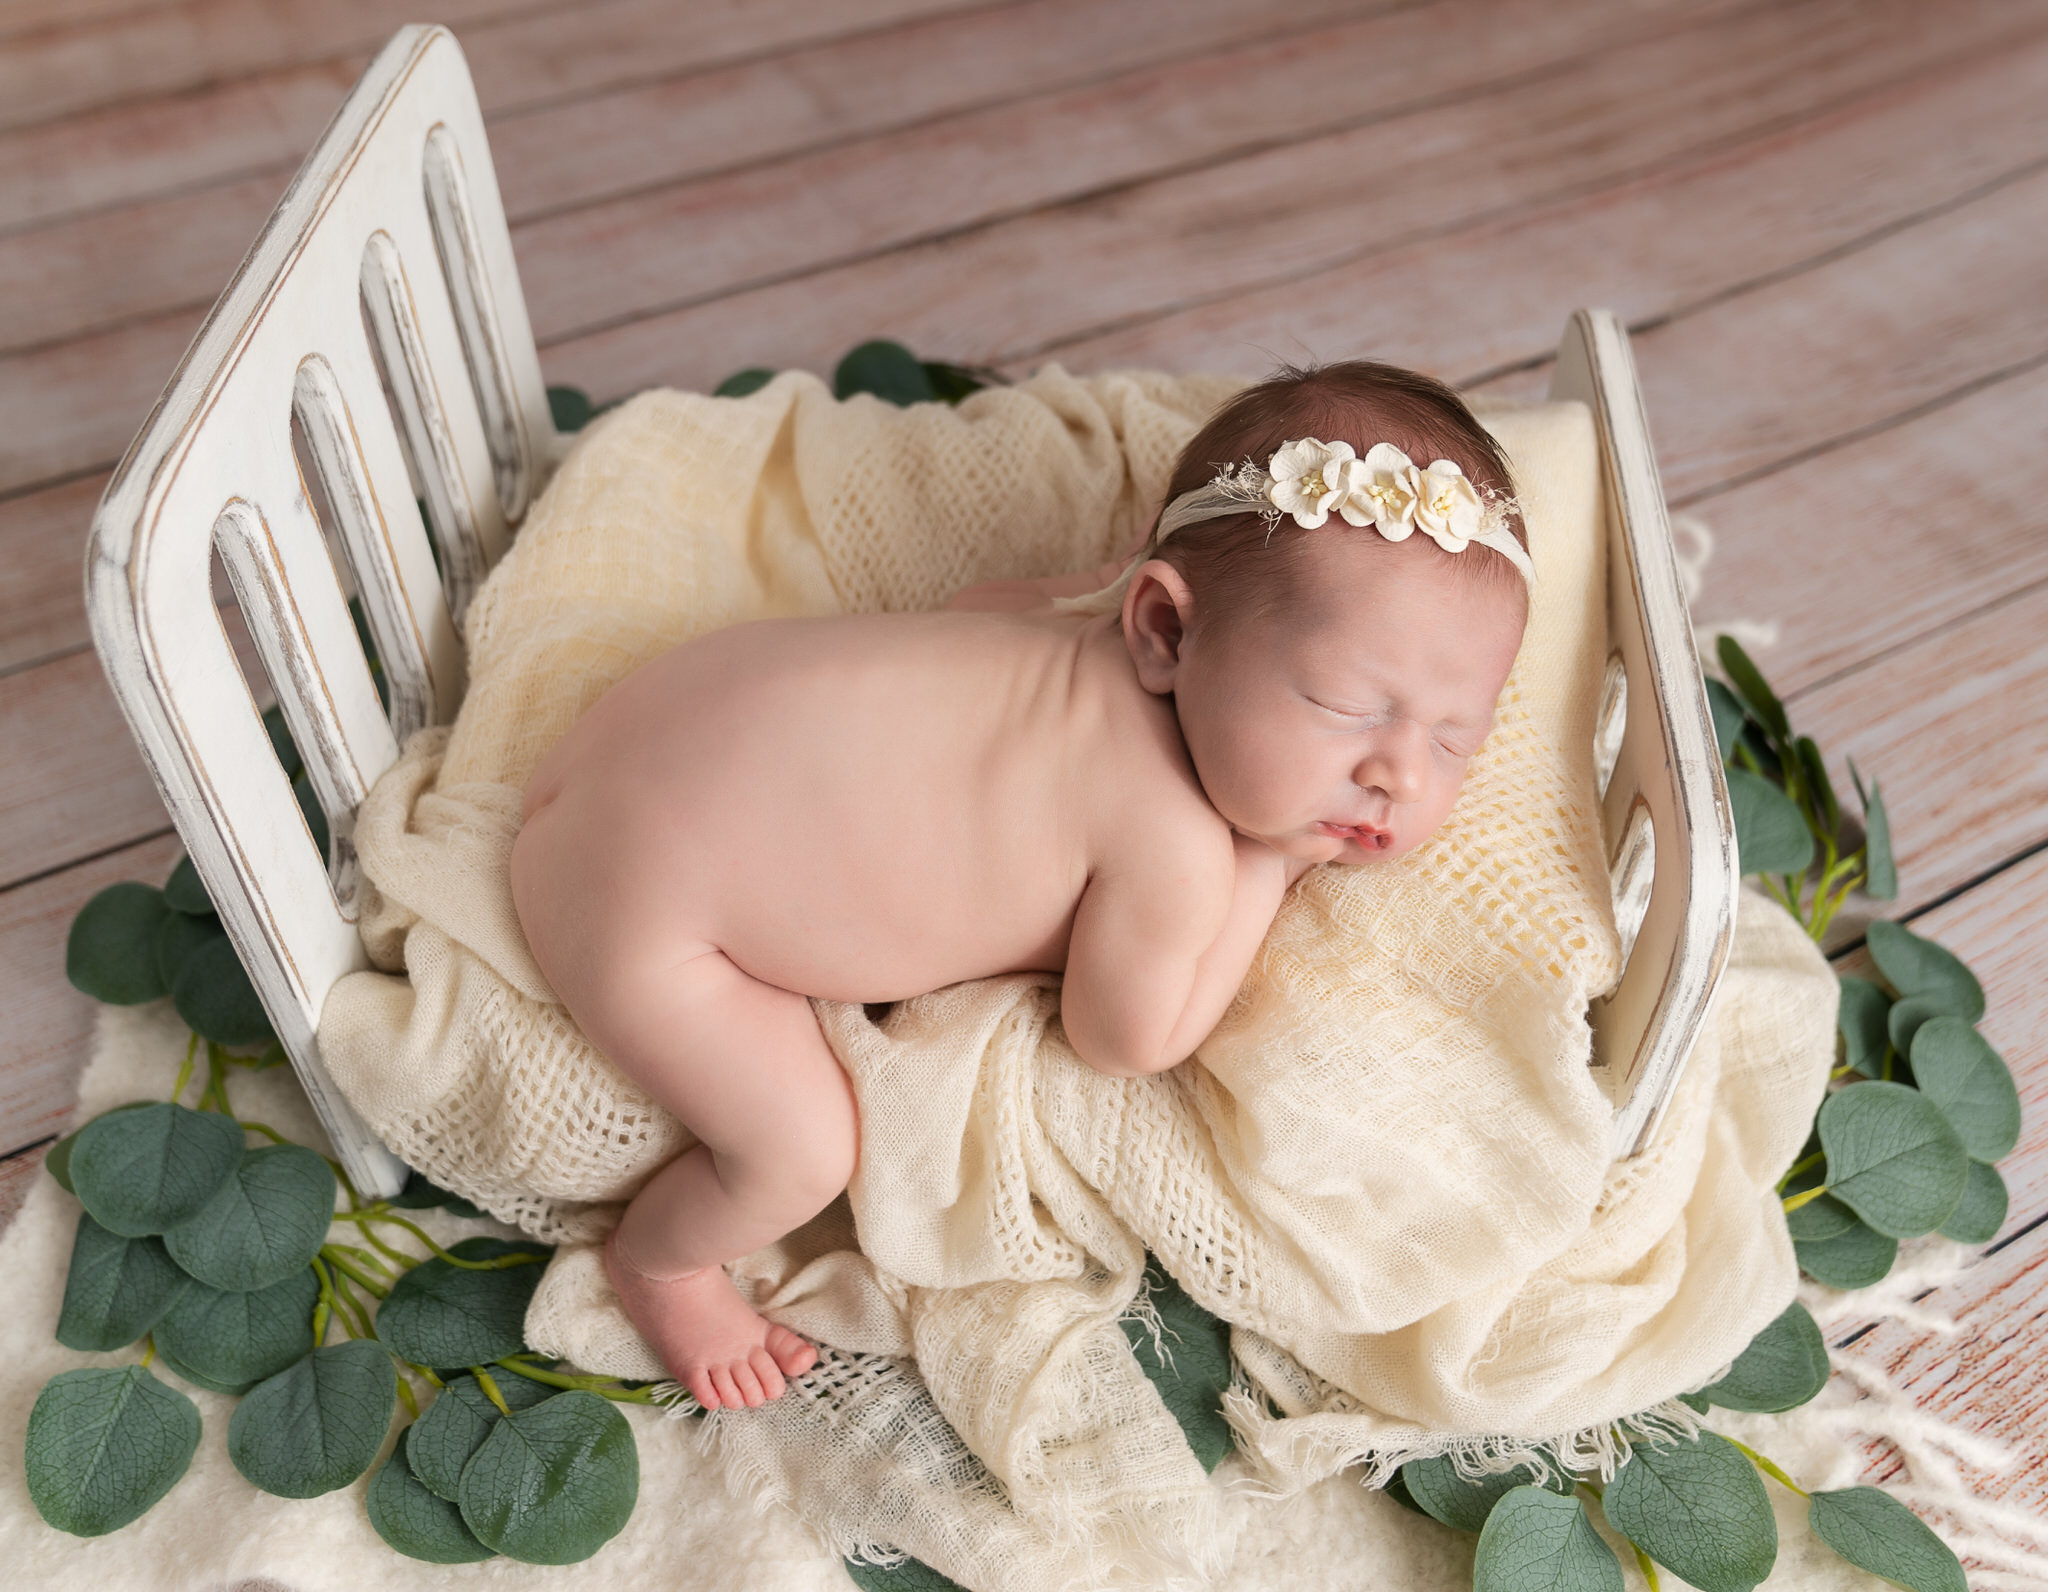 baby girl on bed in studio photoshoot by Newborn Photographer Longfield, Sevenoaks